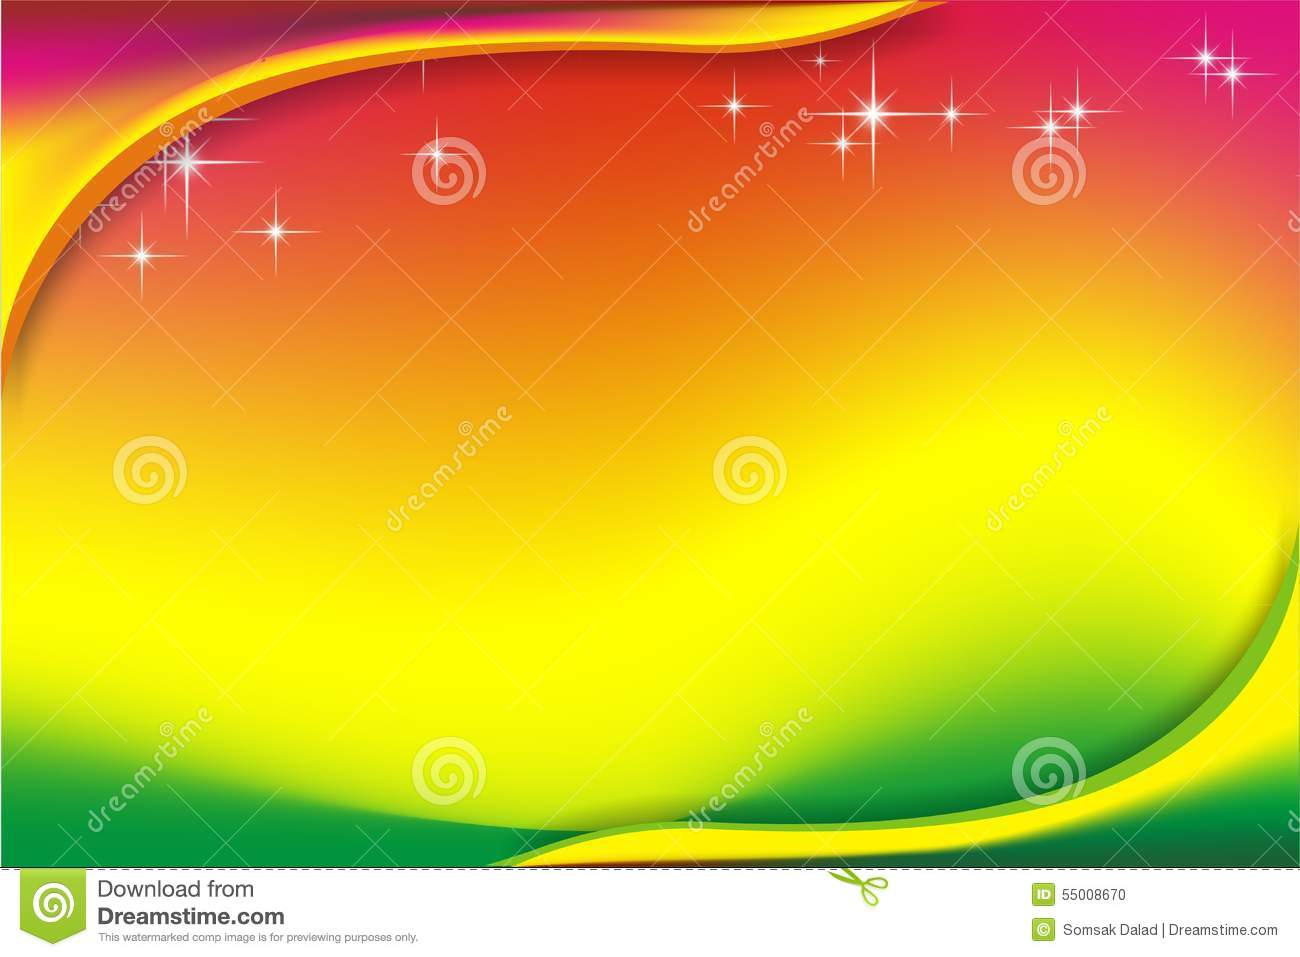 496118e876f Colors background stock illustration. Illustration of motion - 55008670